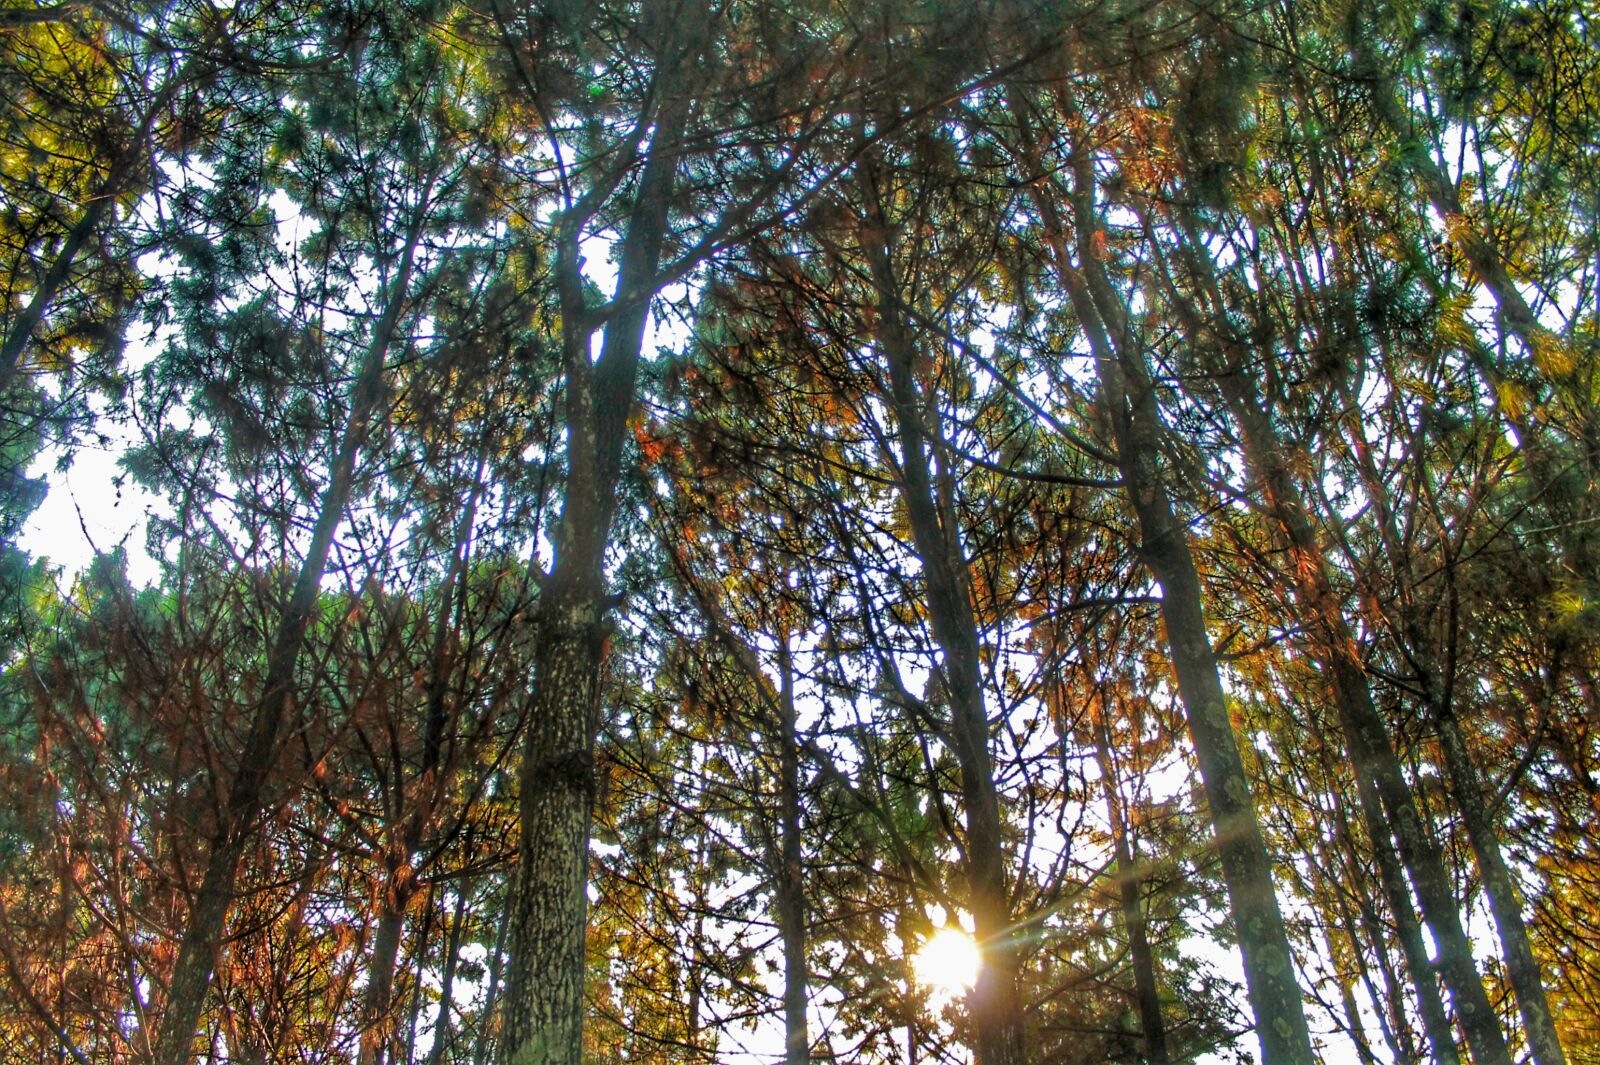 """Canon EOS 1100D (EOS Rebel T3 / EOS Kiss X50) sample photo. """"Pine, the tree, forest"""" photography"""